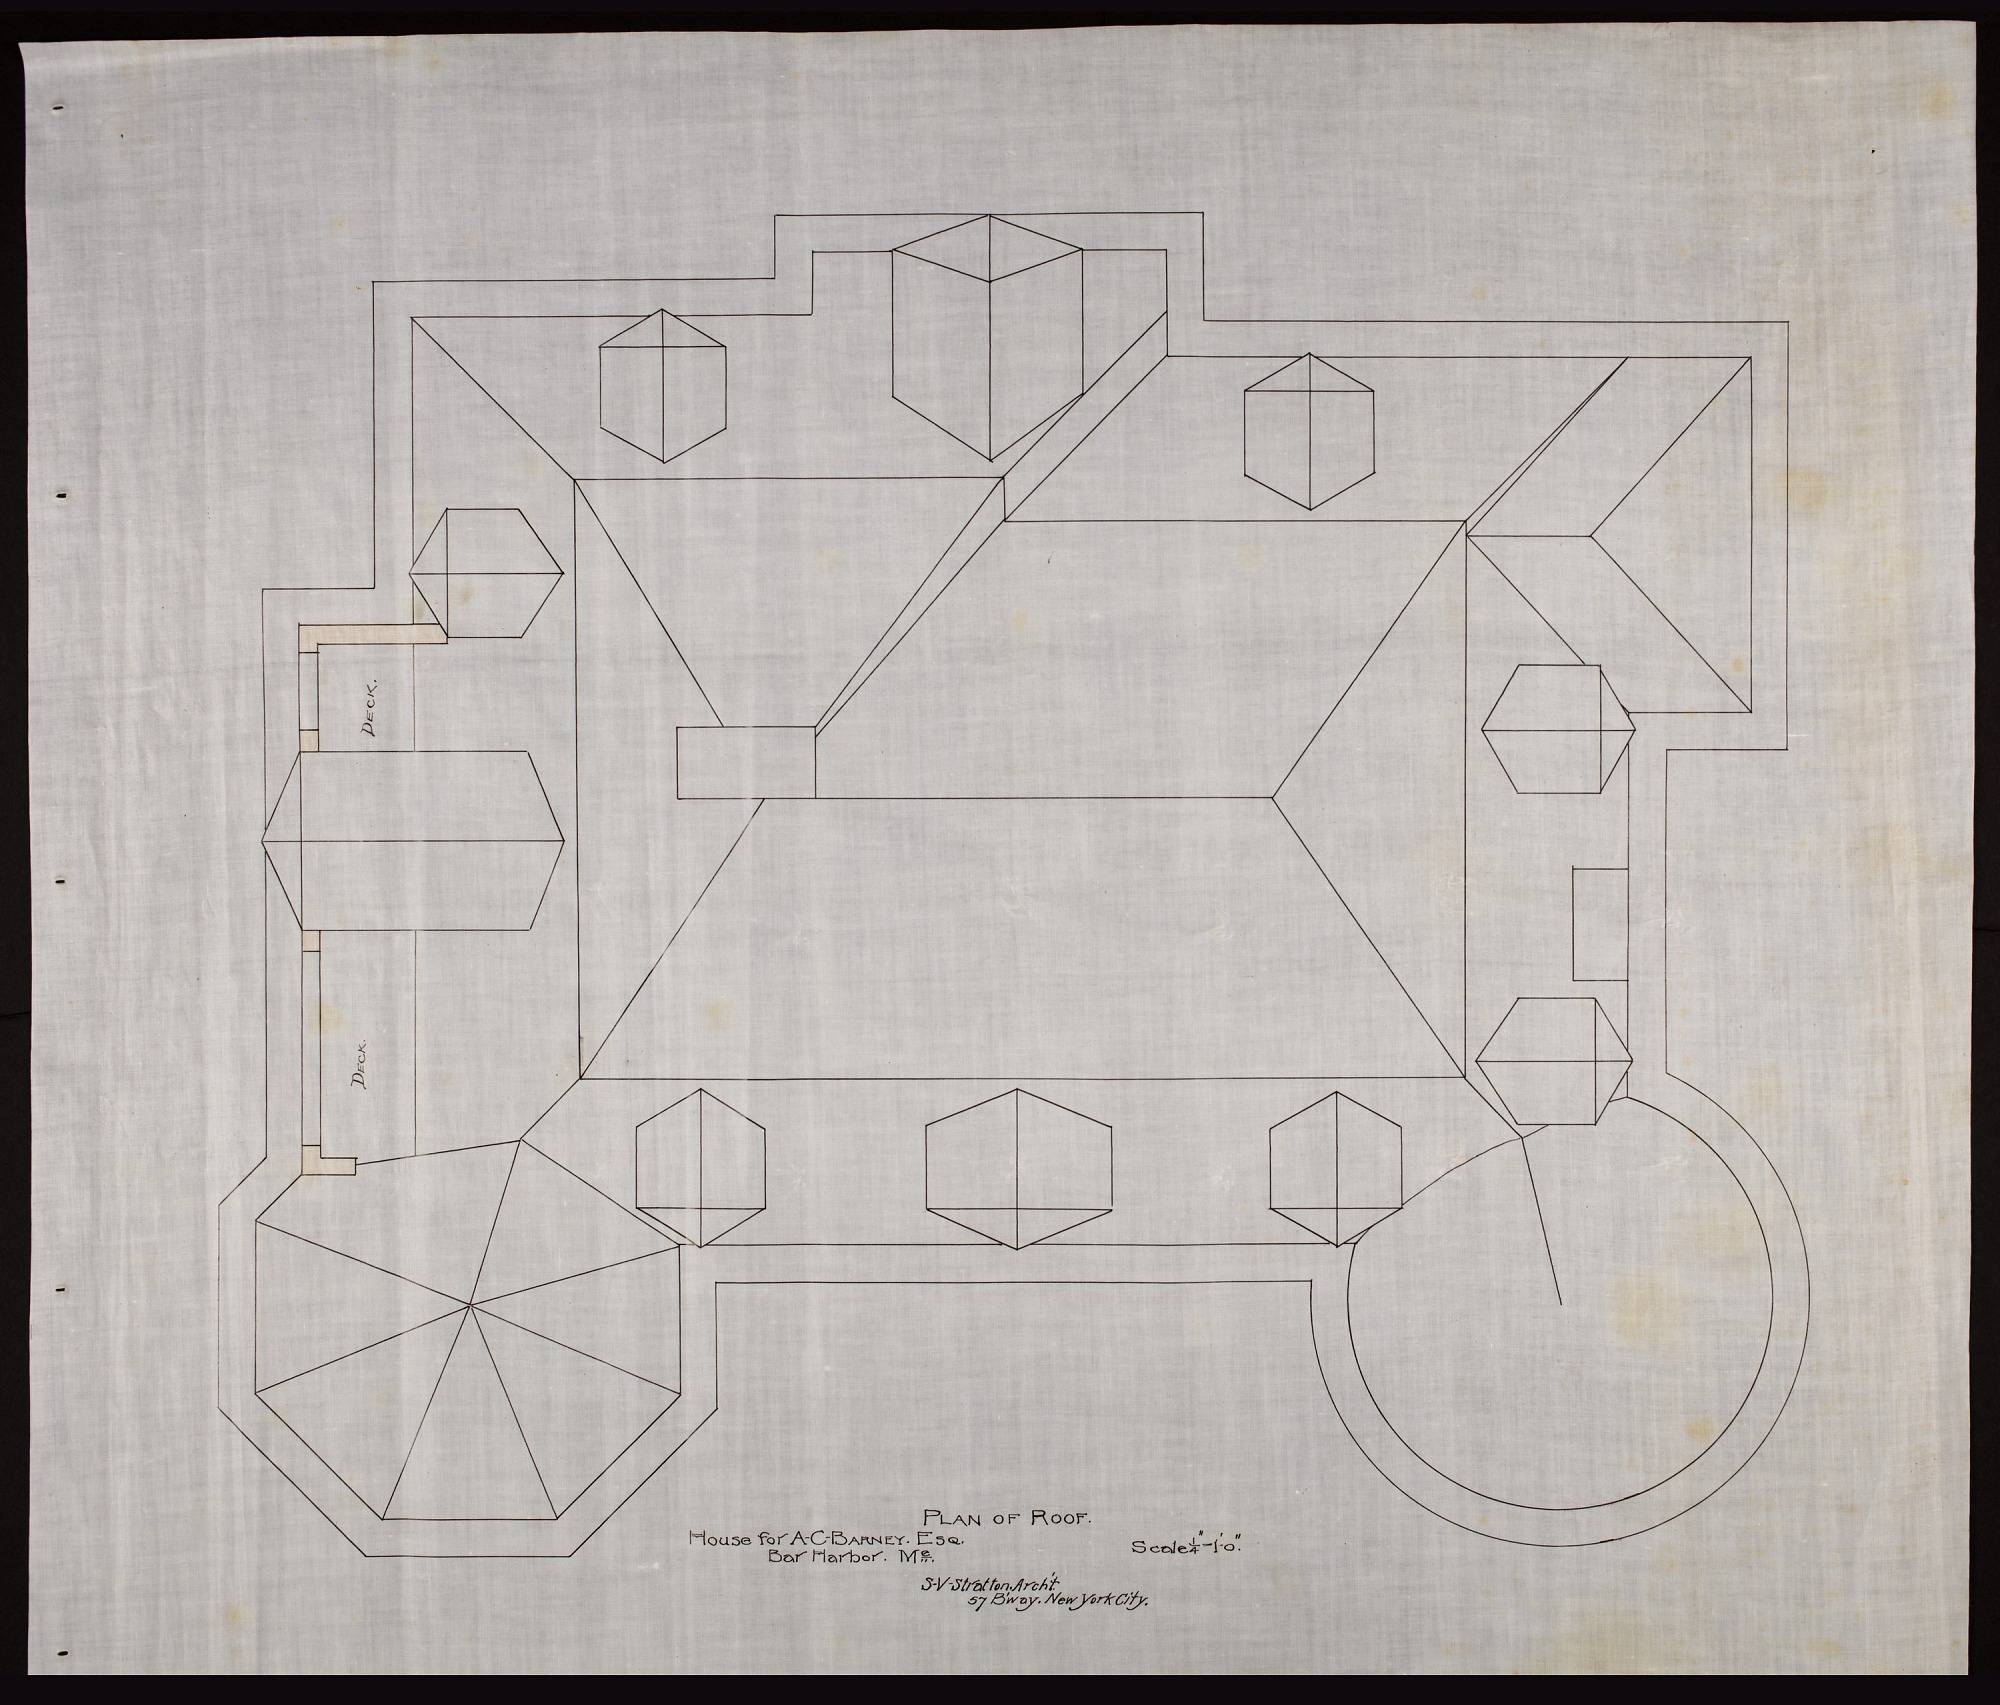 Plan of the Roof of Alice Pike Barney's house in Bar Harbor, Maine